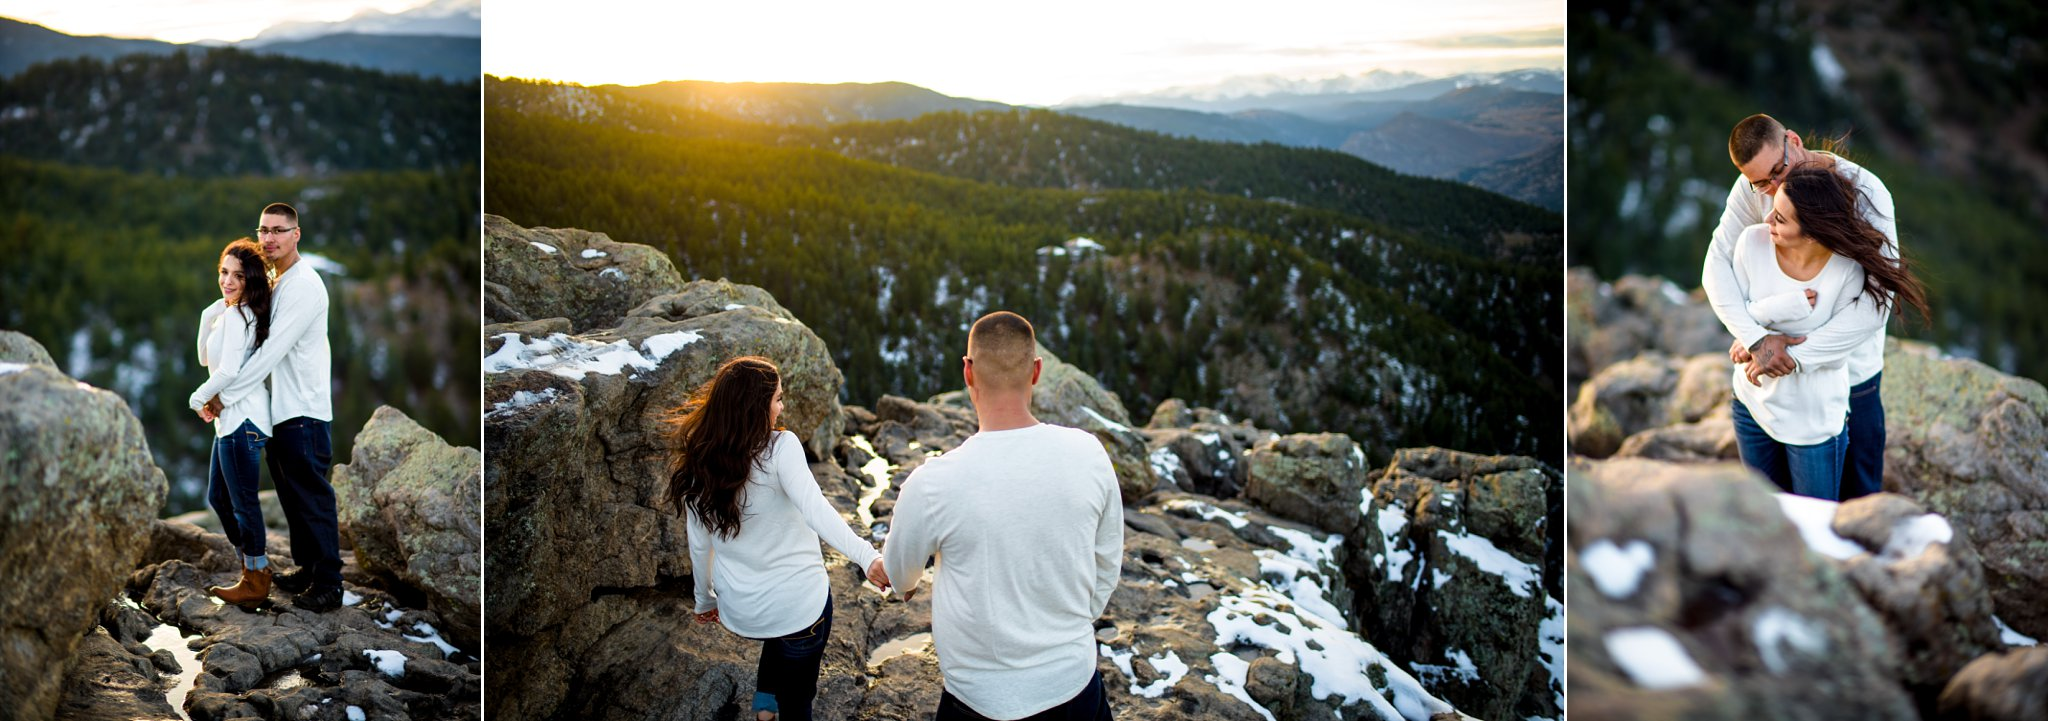 Lost Gulch Overlook Engagement Session_0003.jpg